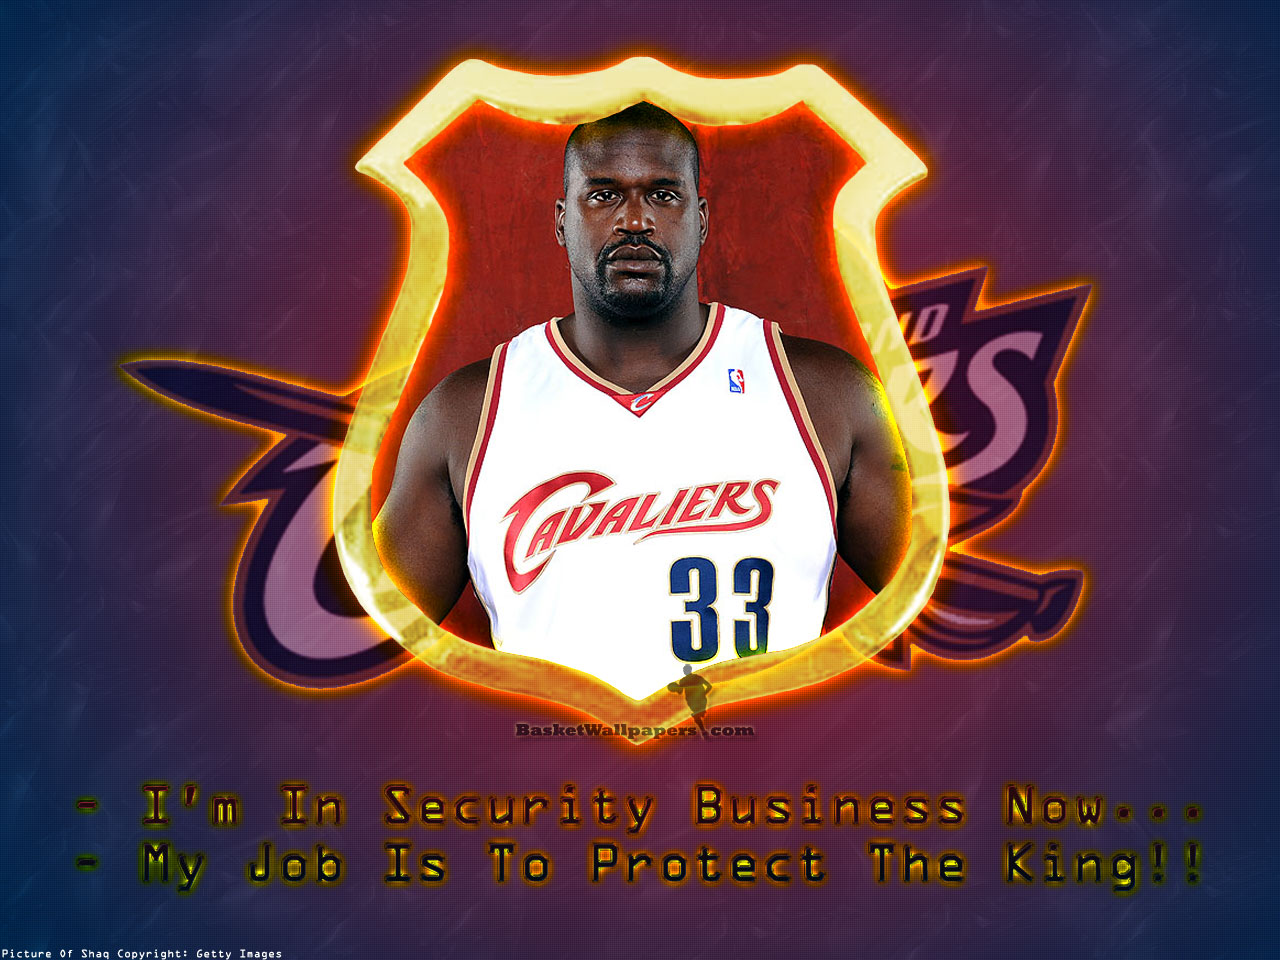 shaquille o rsquo neal wallpapers - photo #25